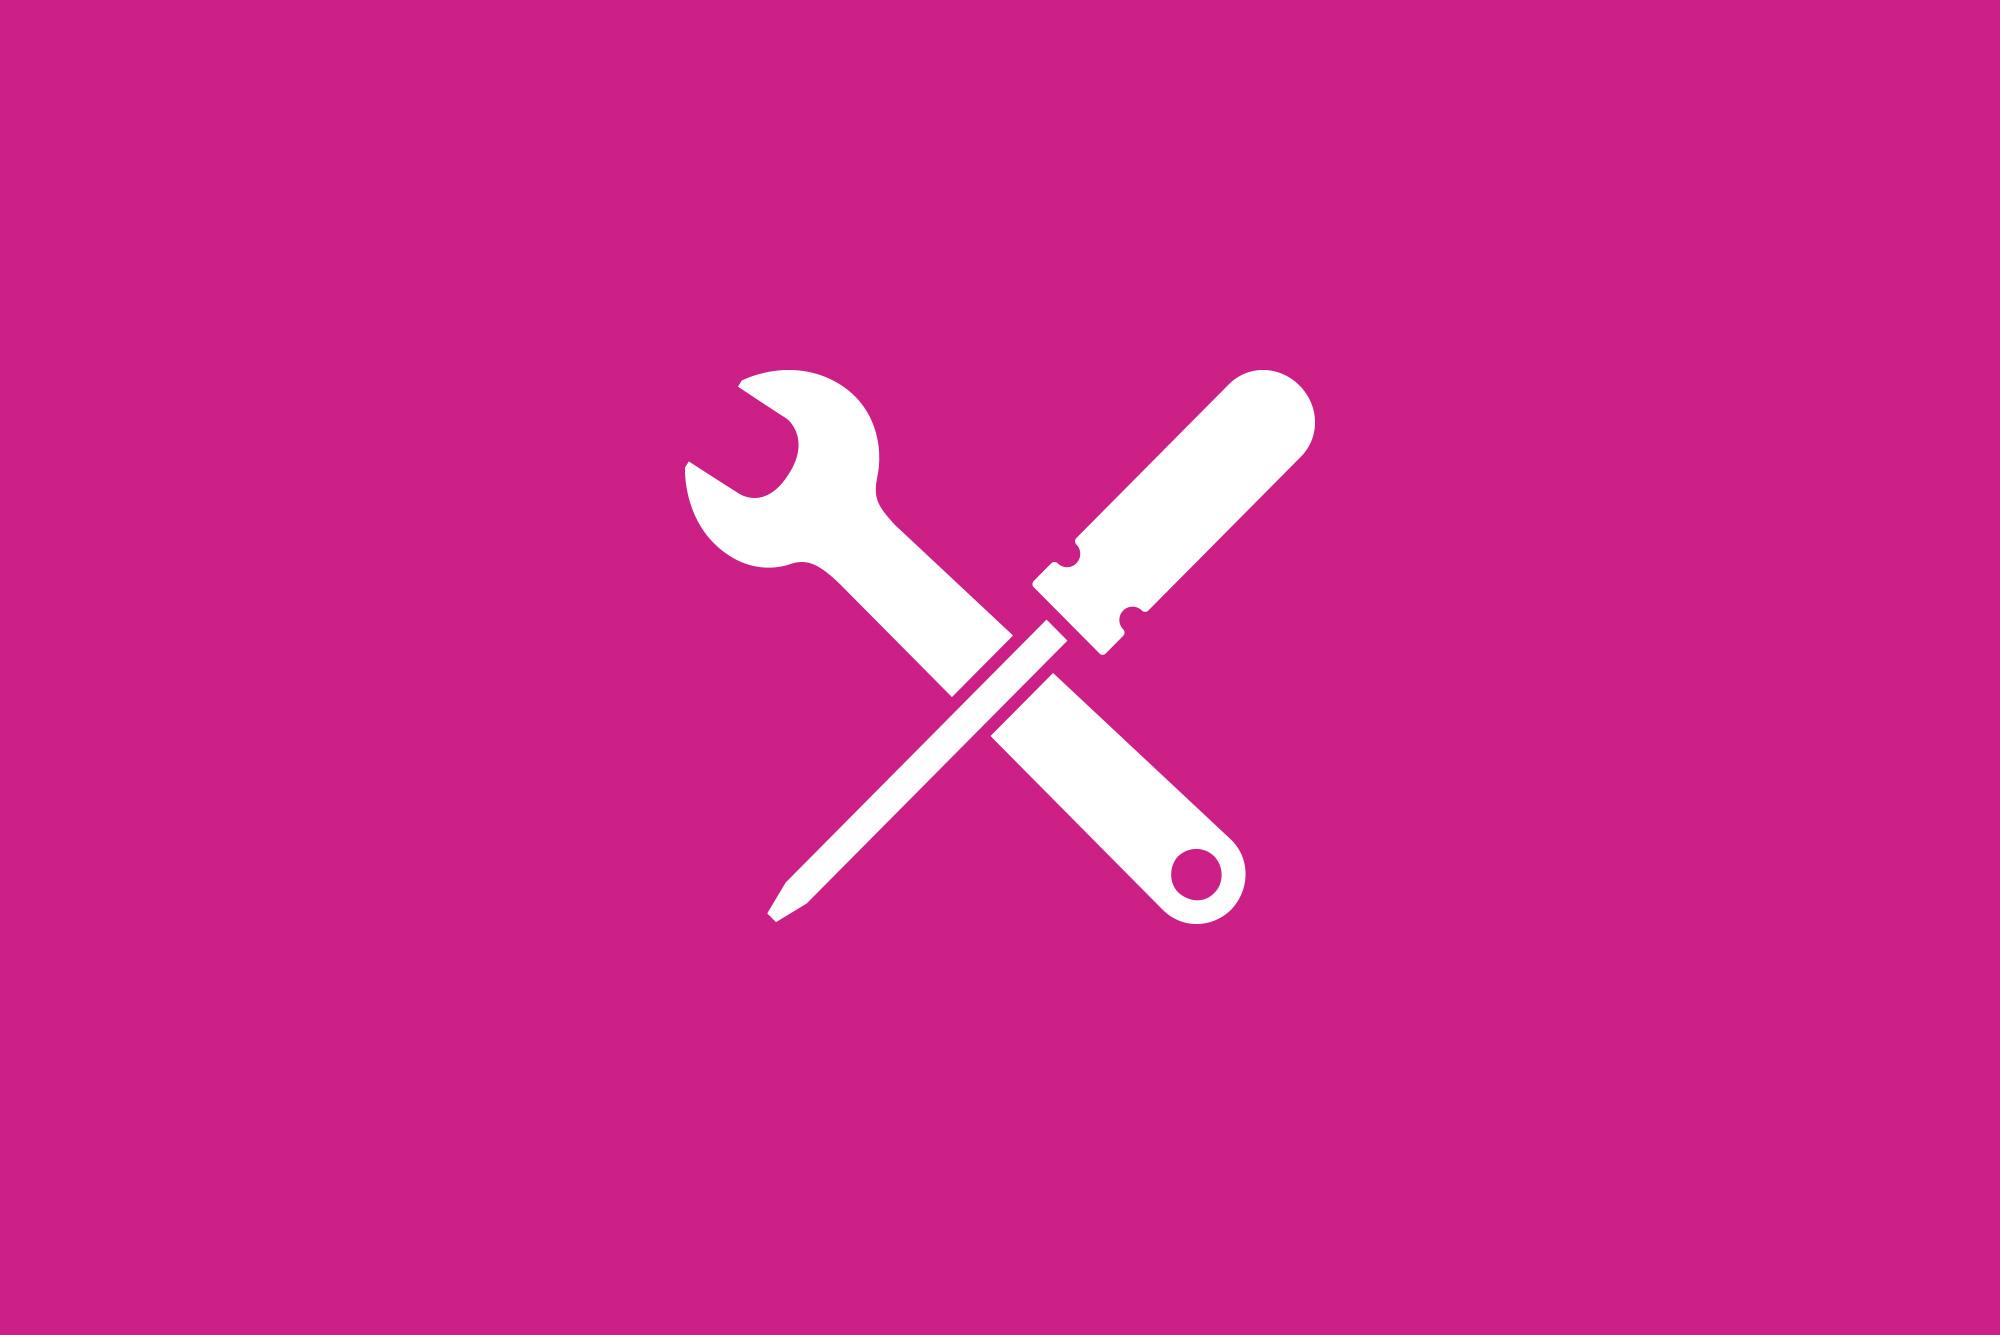 Tool icon on pink background - Website maintenance